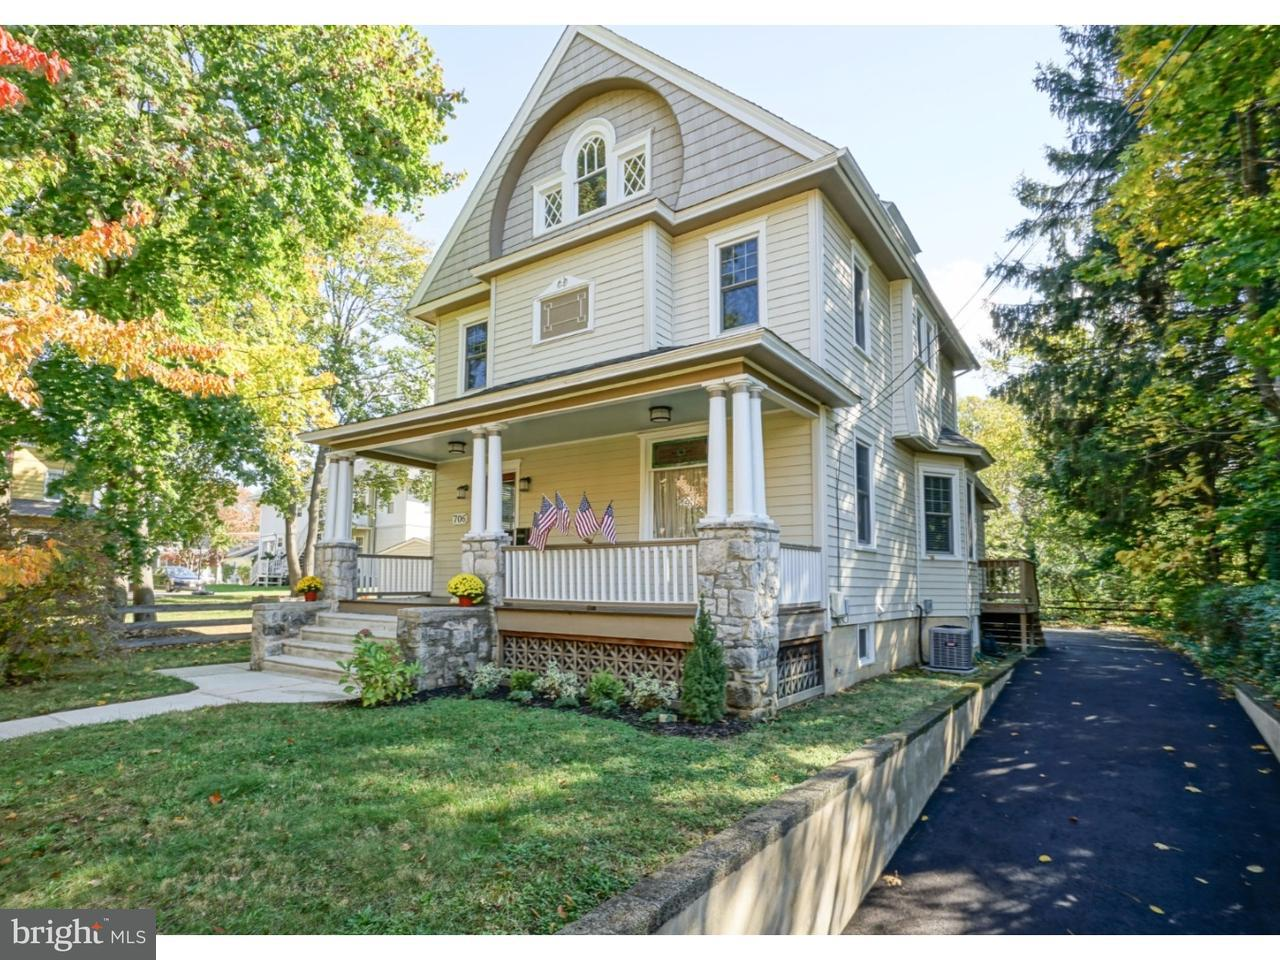 Single Family Home for Sale at 706 GREEN Street Haddon Heights, New Jersey 08035 United States